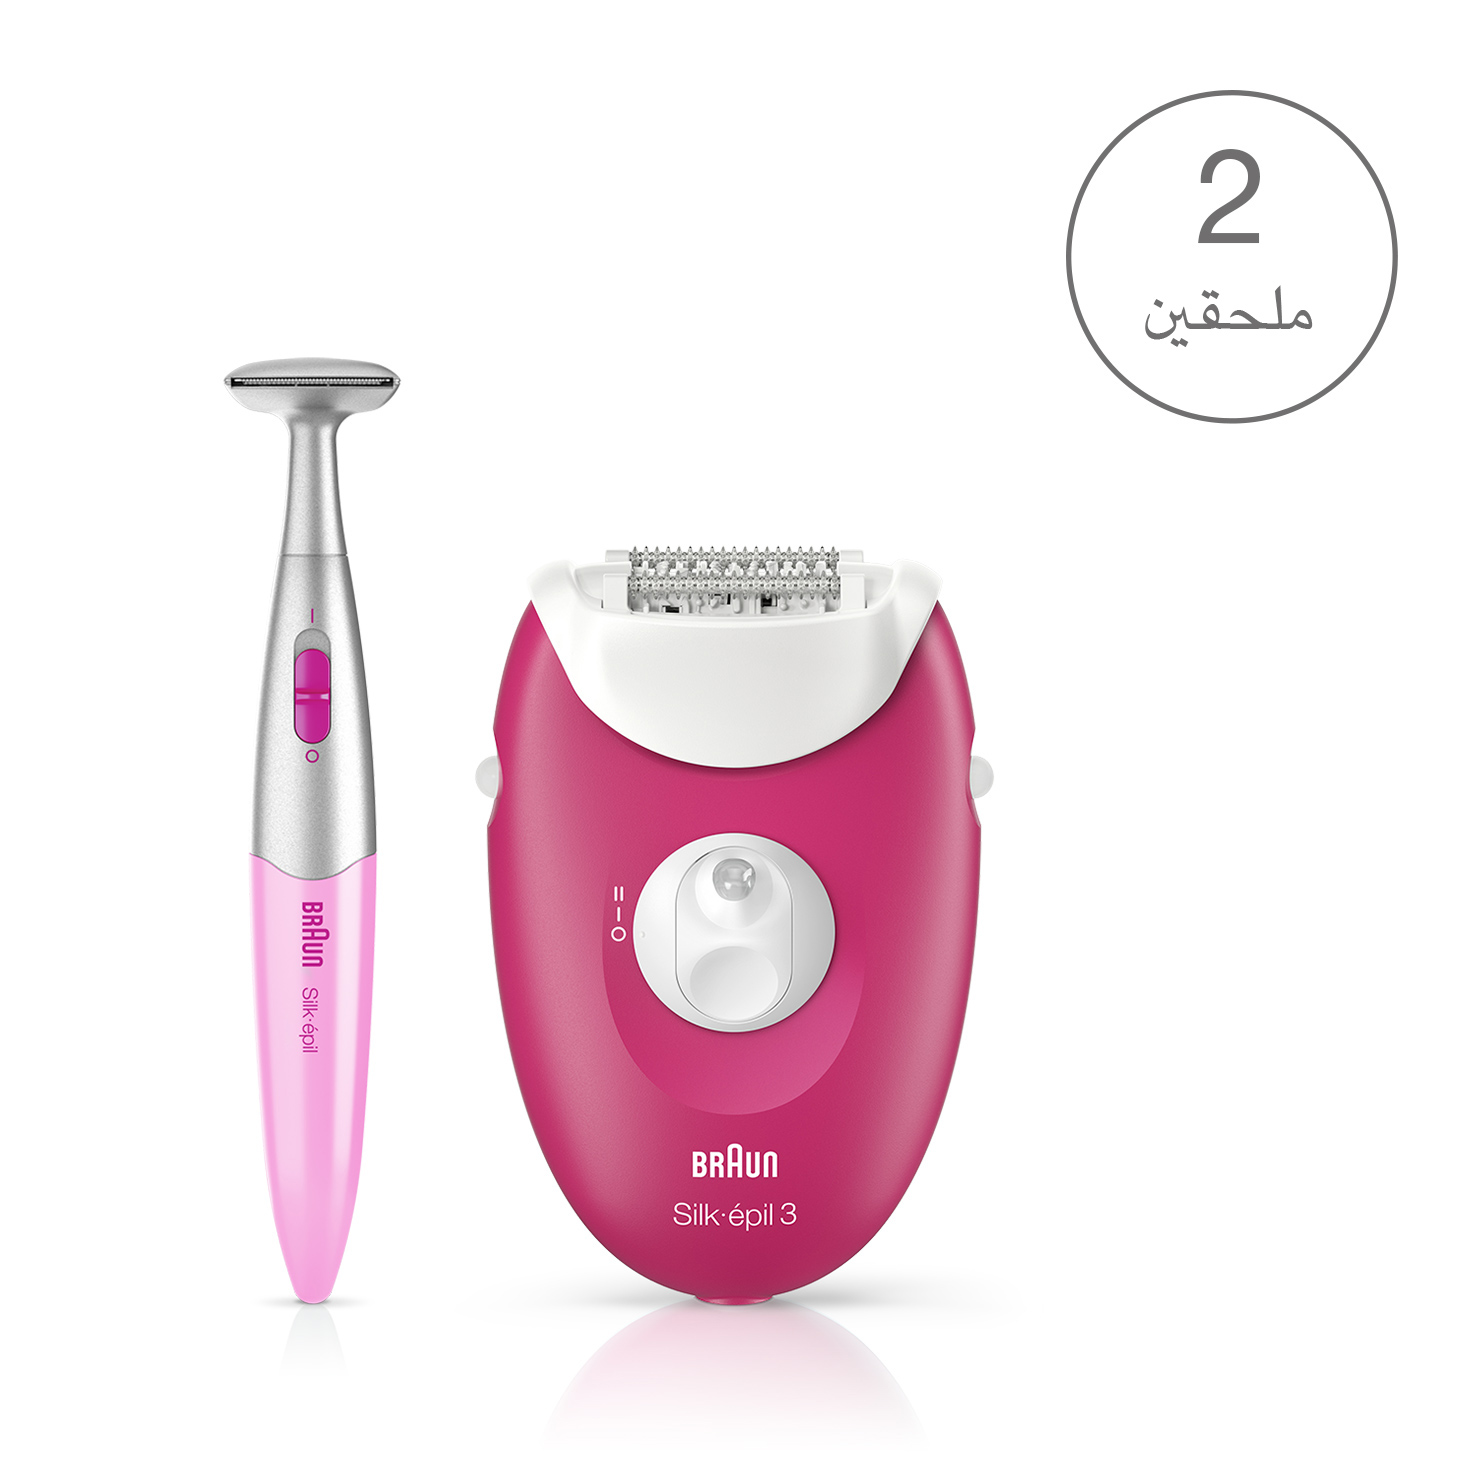 Silk-épil 3 3-420 epilator - What´s in the box